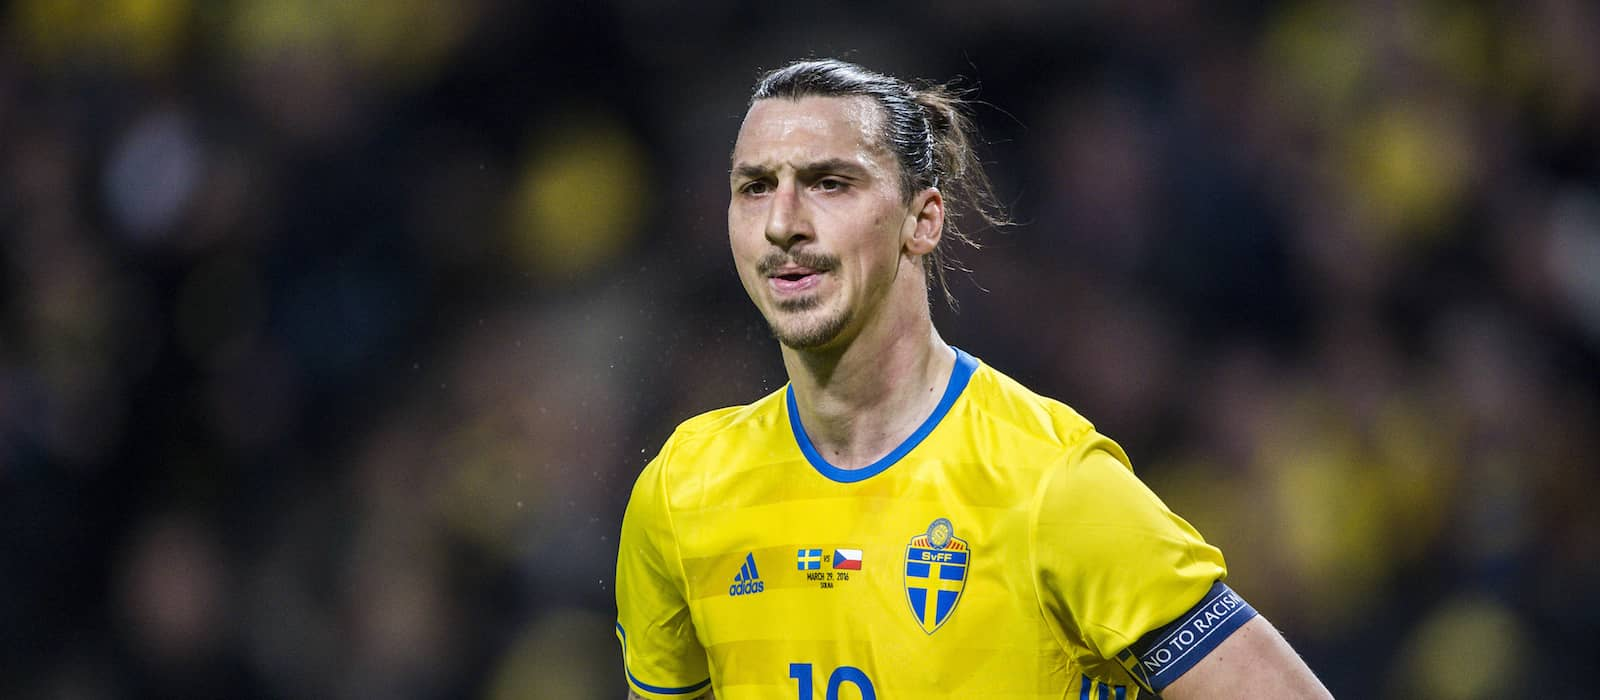 Video: Zlatan Ibrahimovic grins when asked about a Manchester United offer